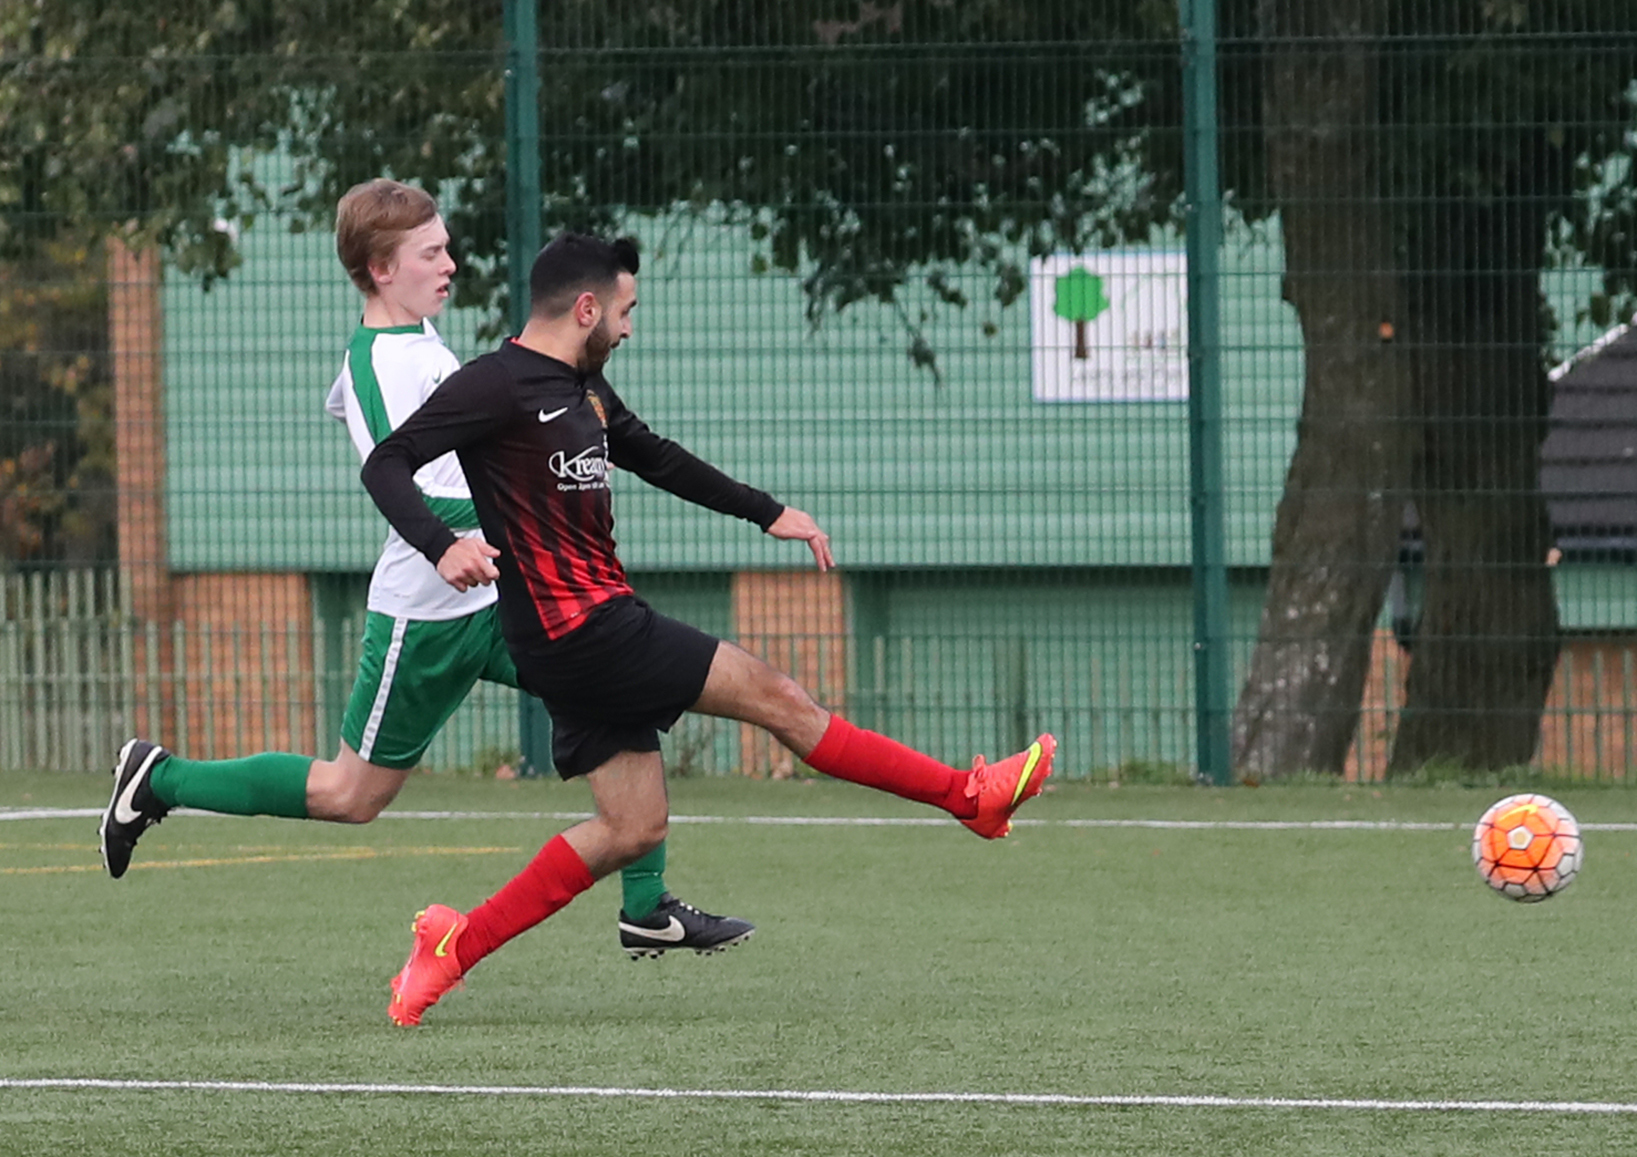 TVR United add a second goal on their way to a 3-2 win against Unita – Picture: Alex Daniel